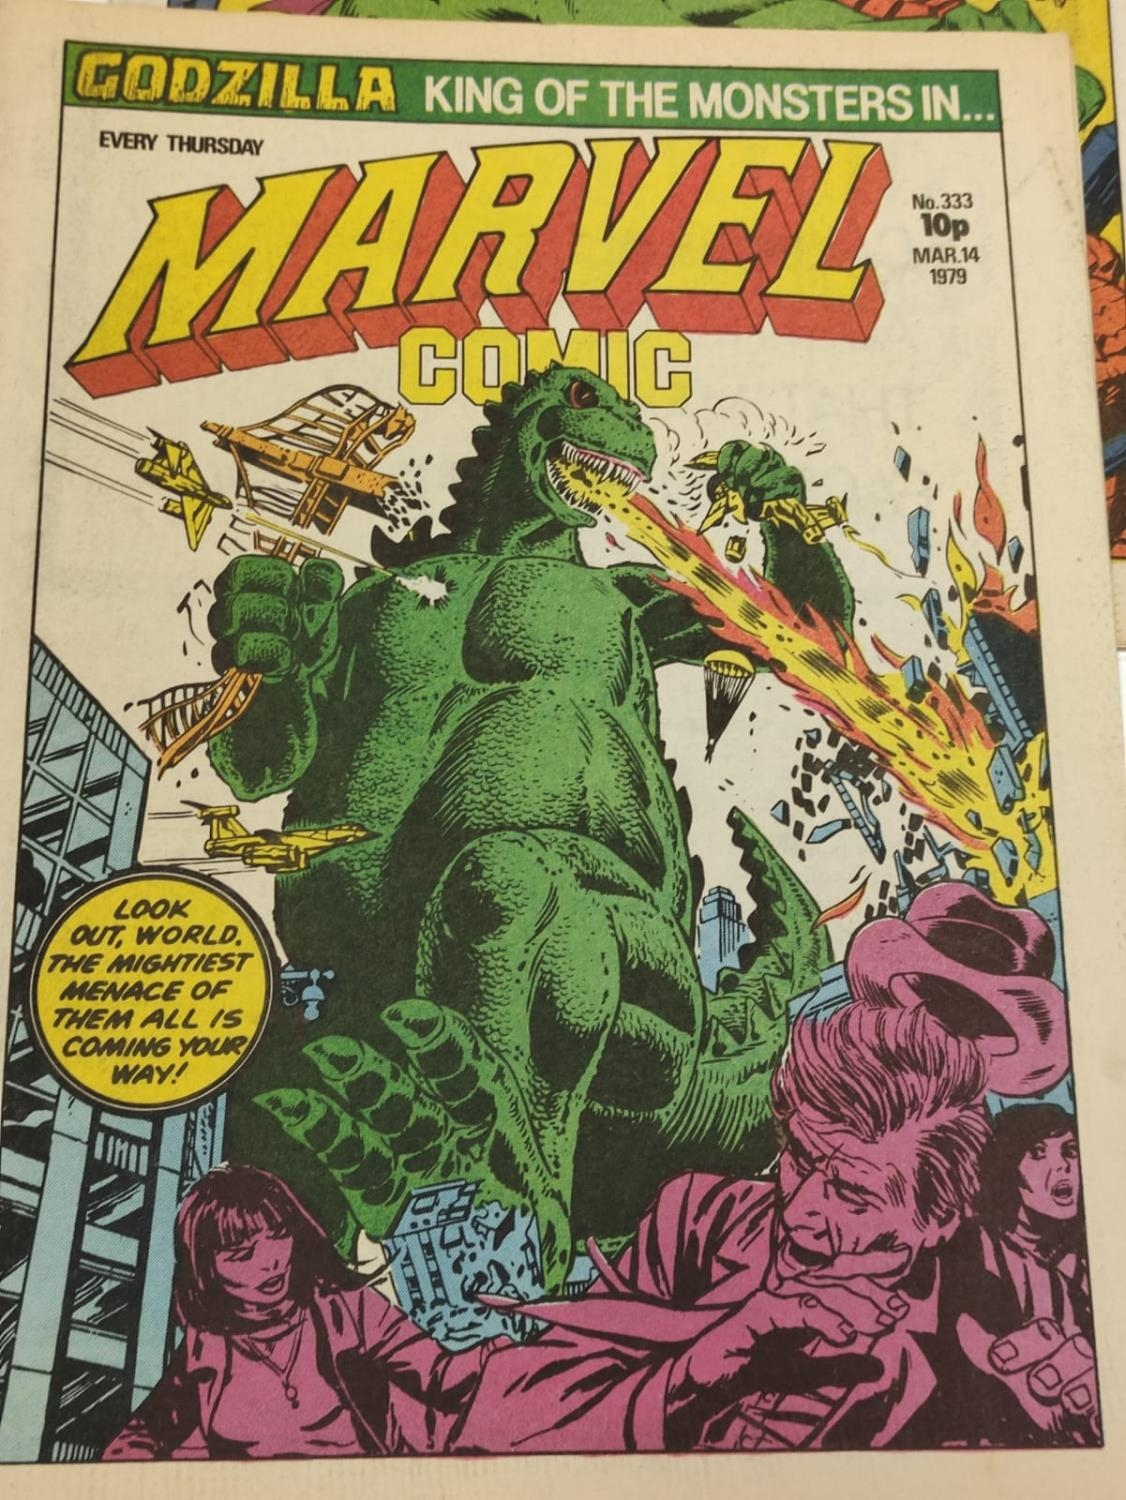 20 editions of mixed Vintage Marvel Comics. - Image 28 of 56